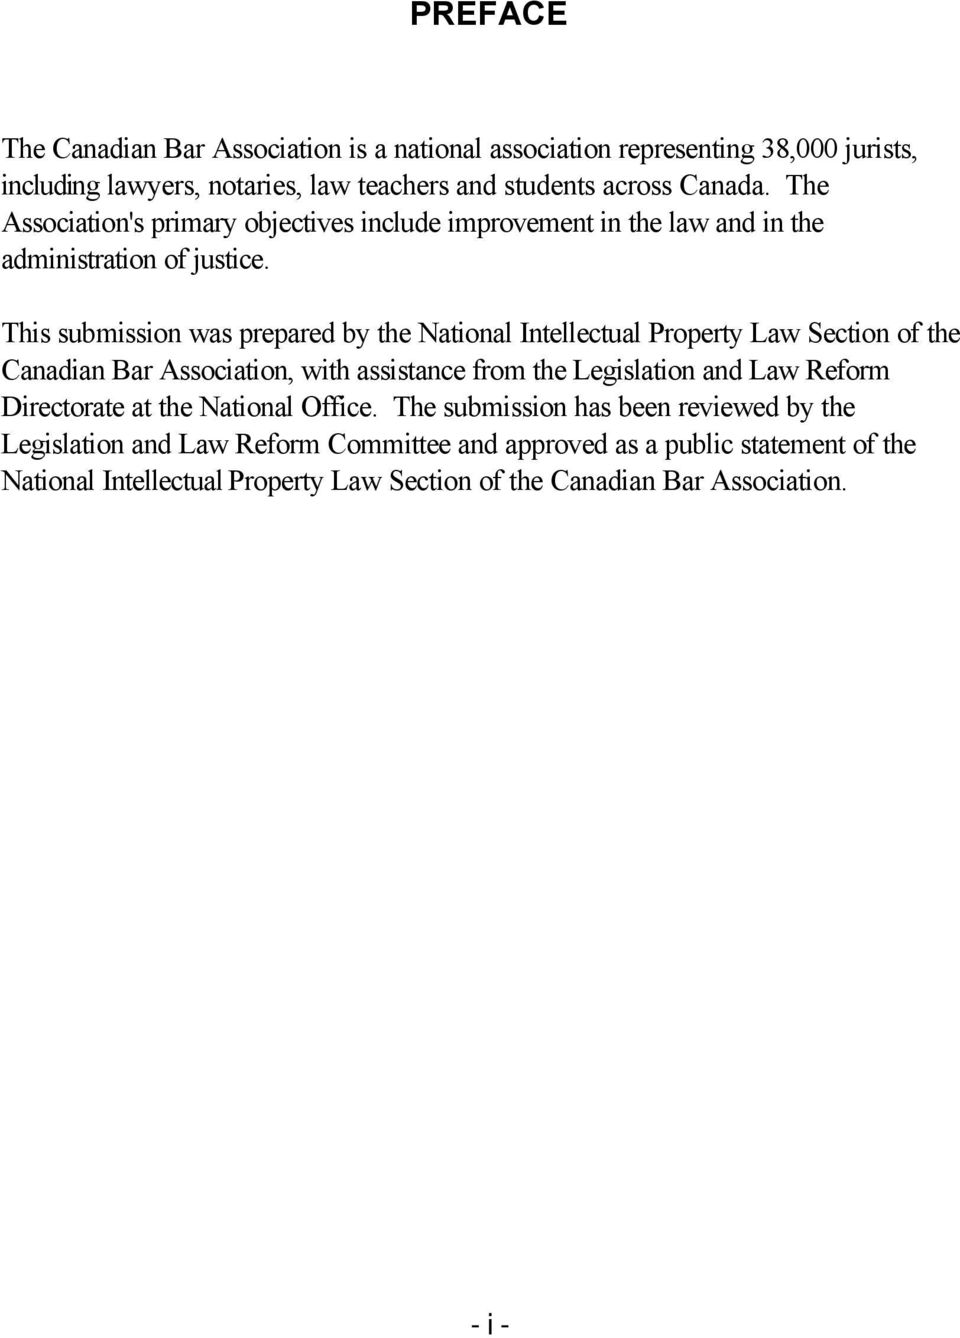 This submission was prepared by the National Intellectual Property Law Section of the Canadian Bar Association, with assistance from the Legislation and Law Reform